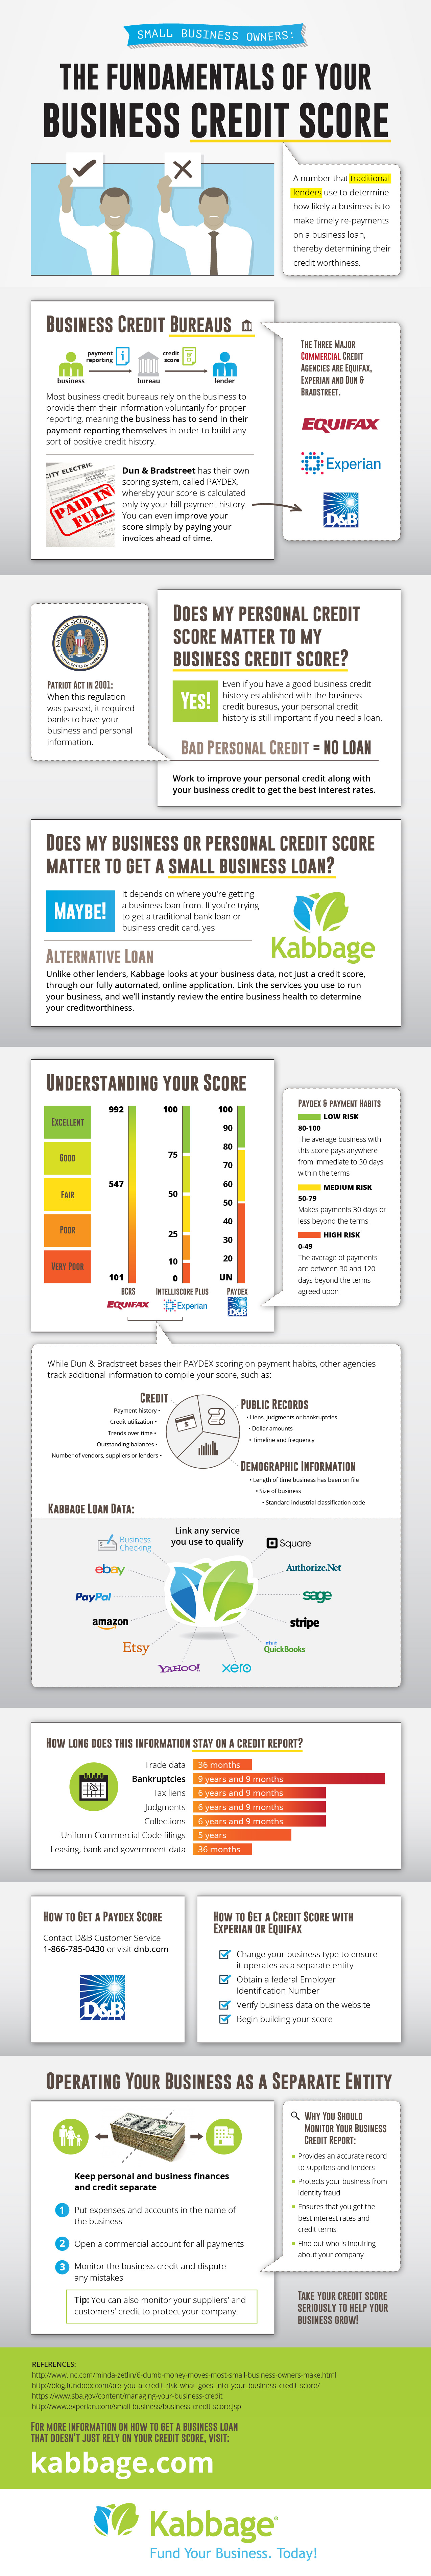 Experian business credit report unlimitedgamers the fundamentals of your business credit score infographic reheart Image collections